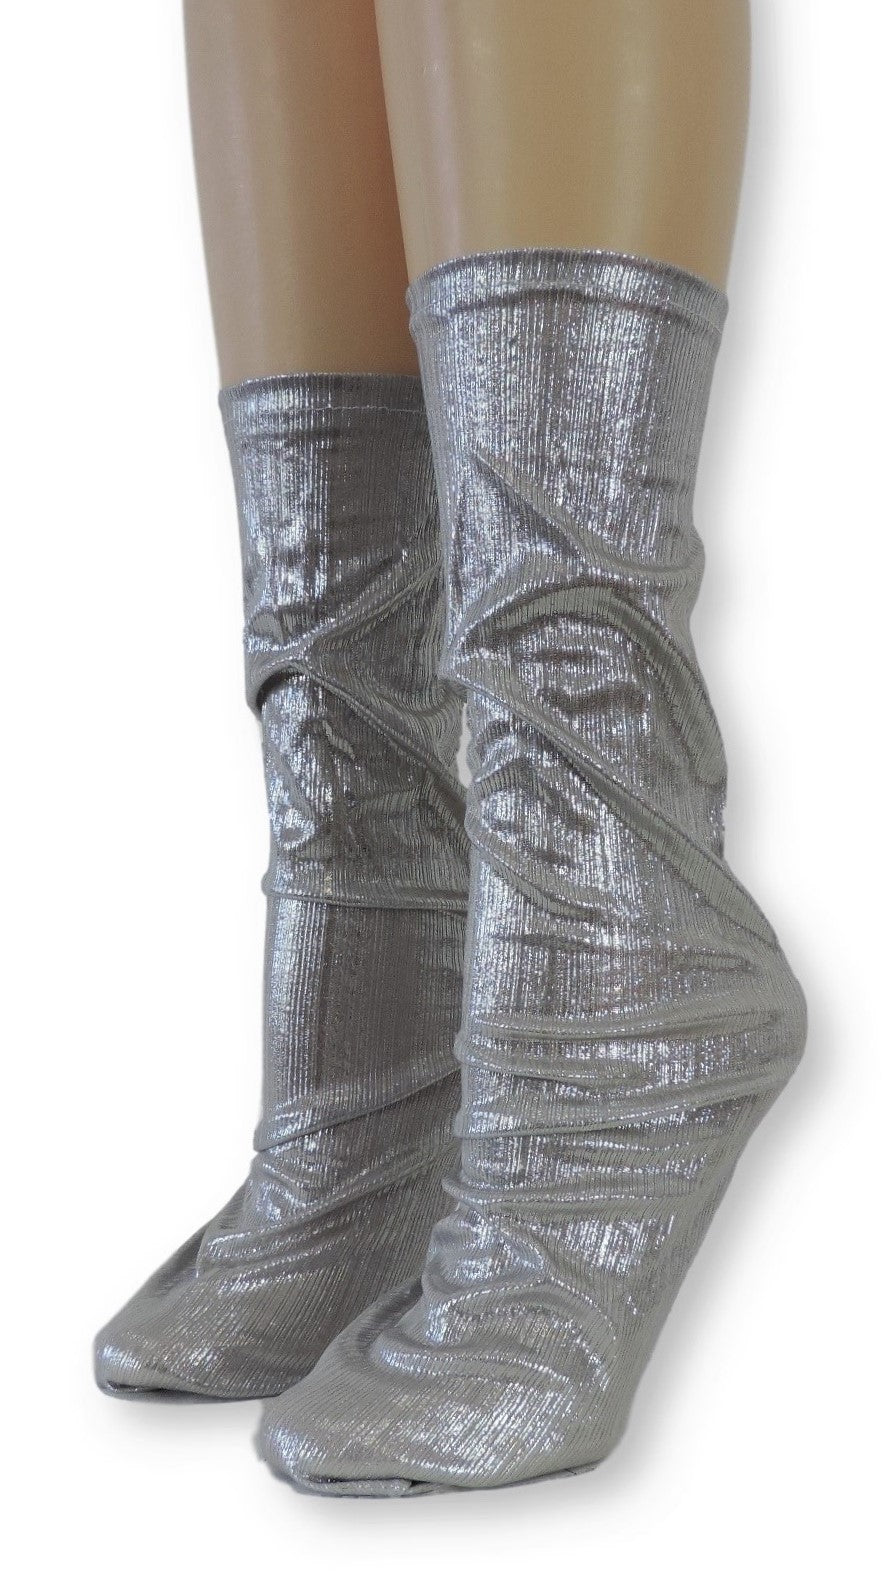 Silver Reflective Socks